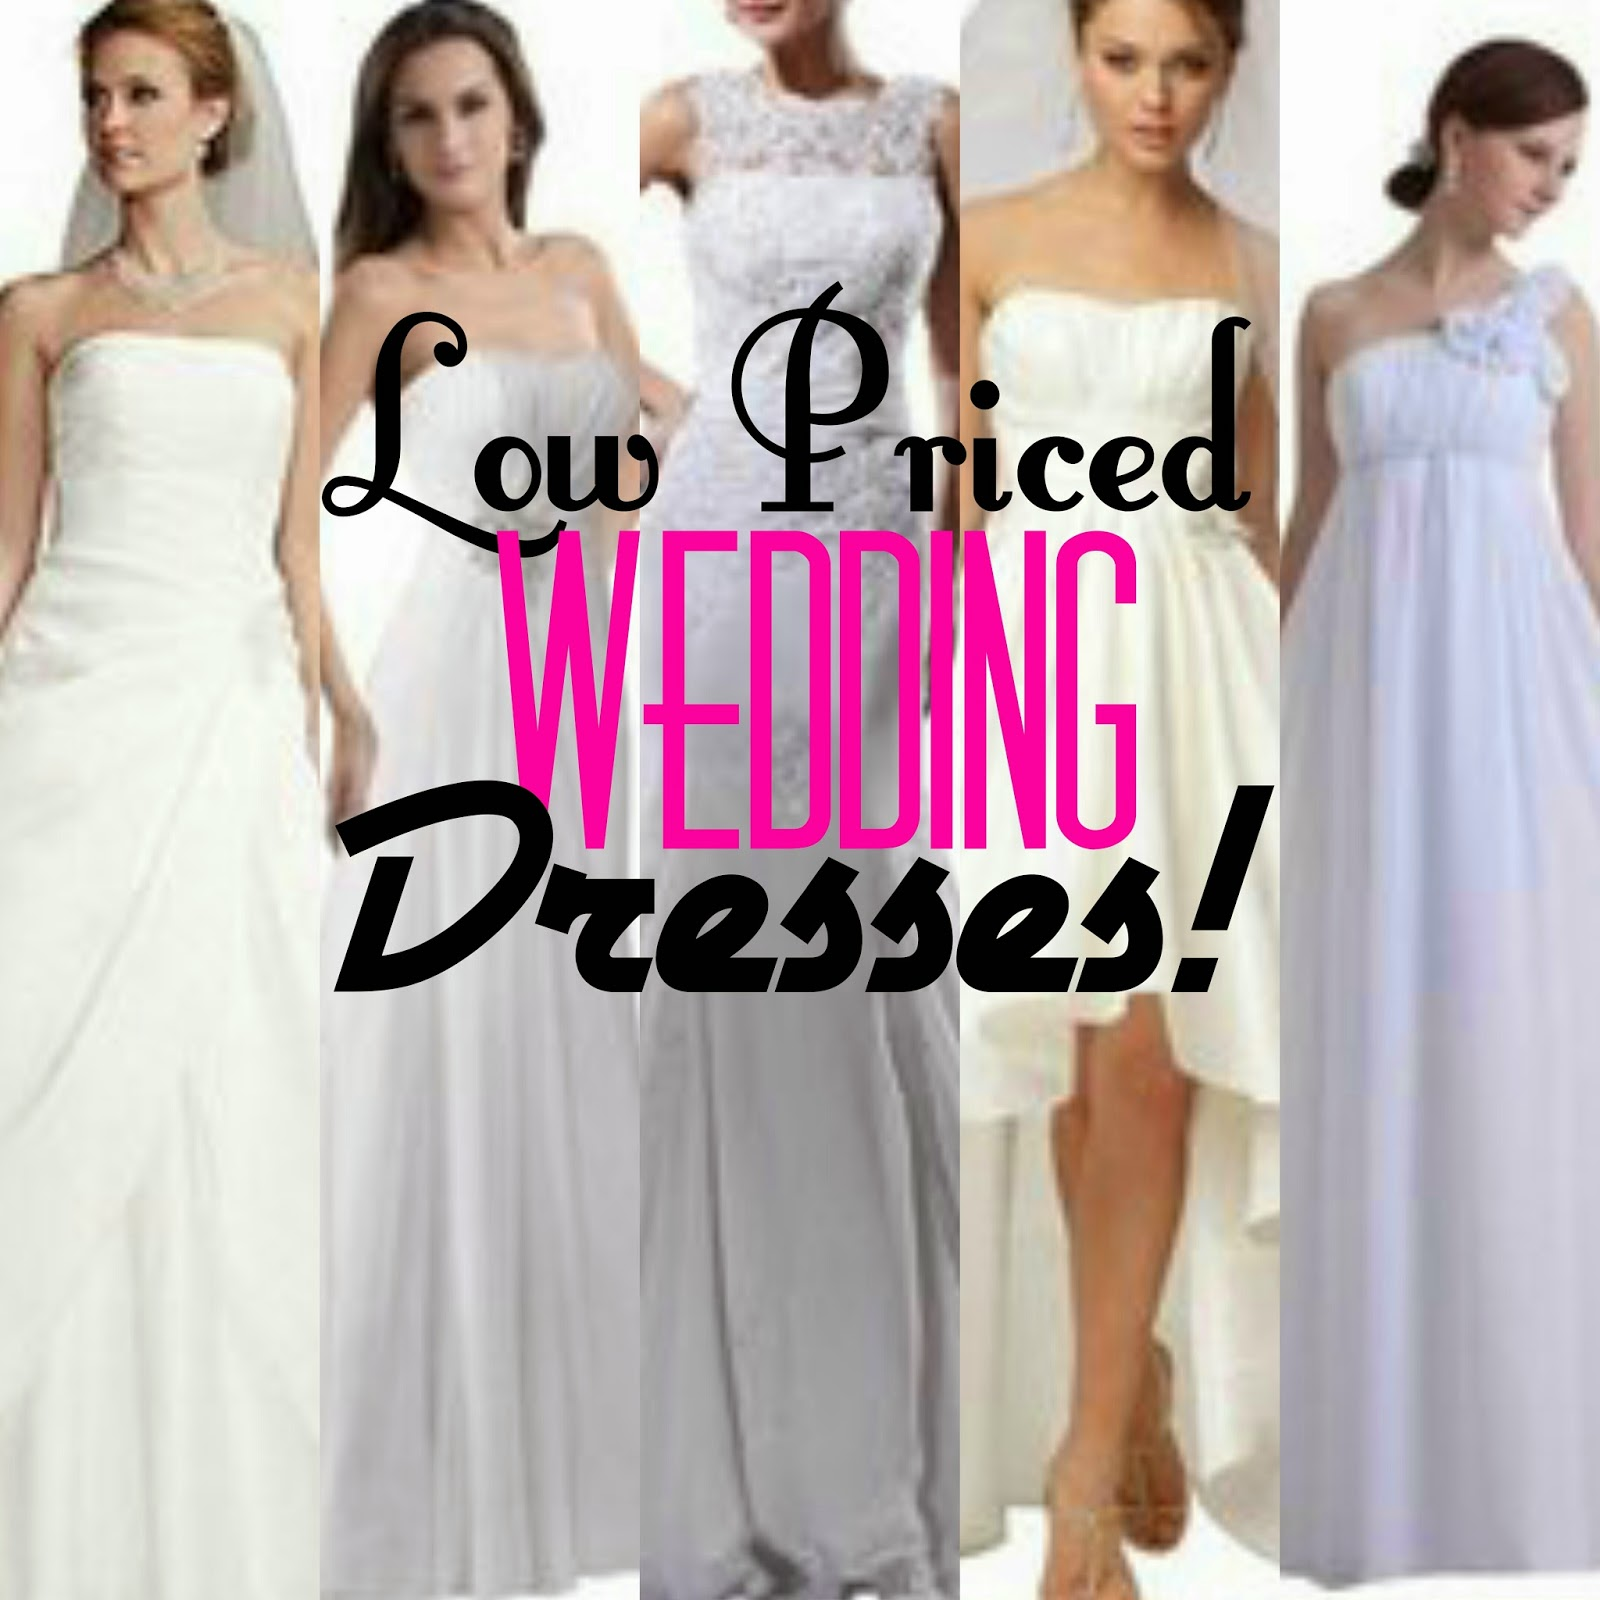 This Product and That!: Low Priced Wedding Dresses